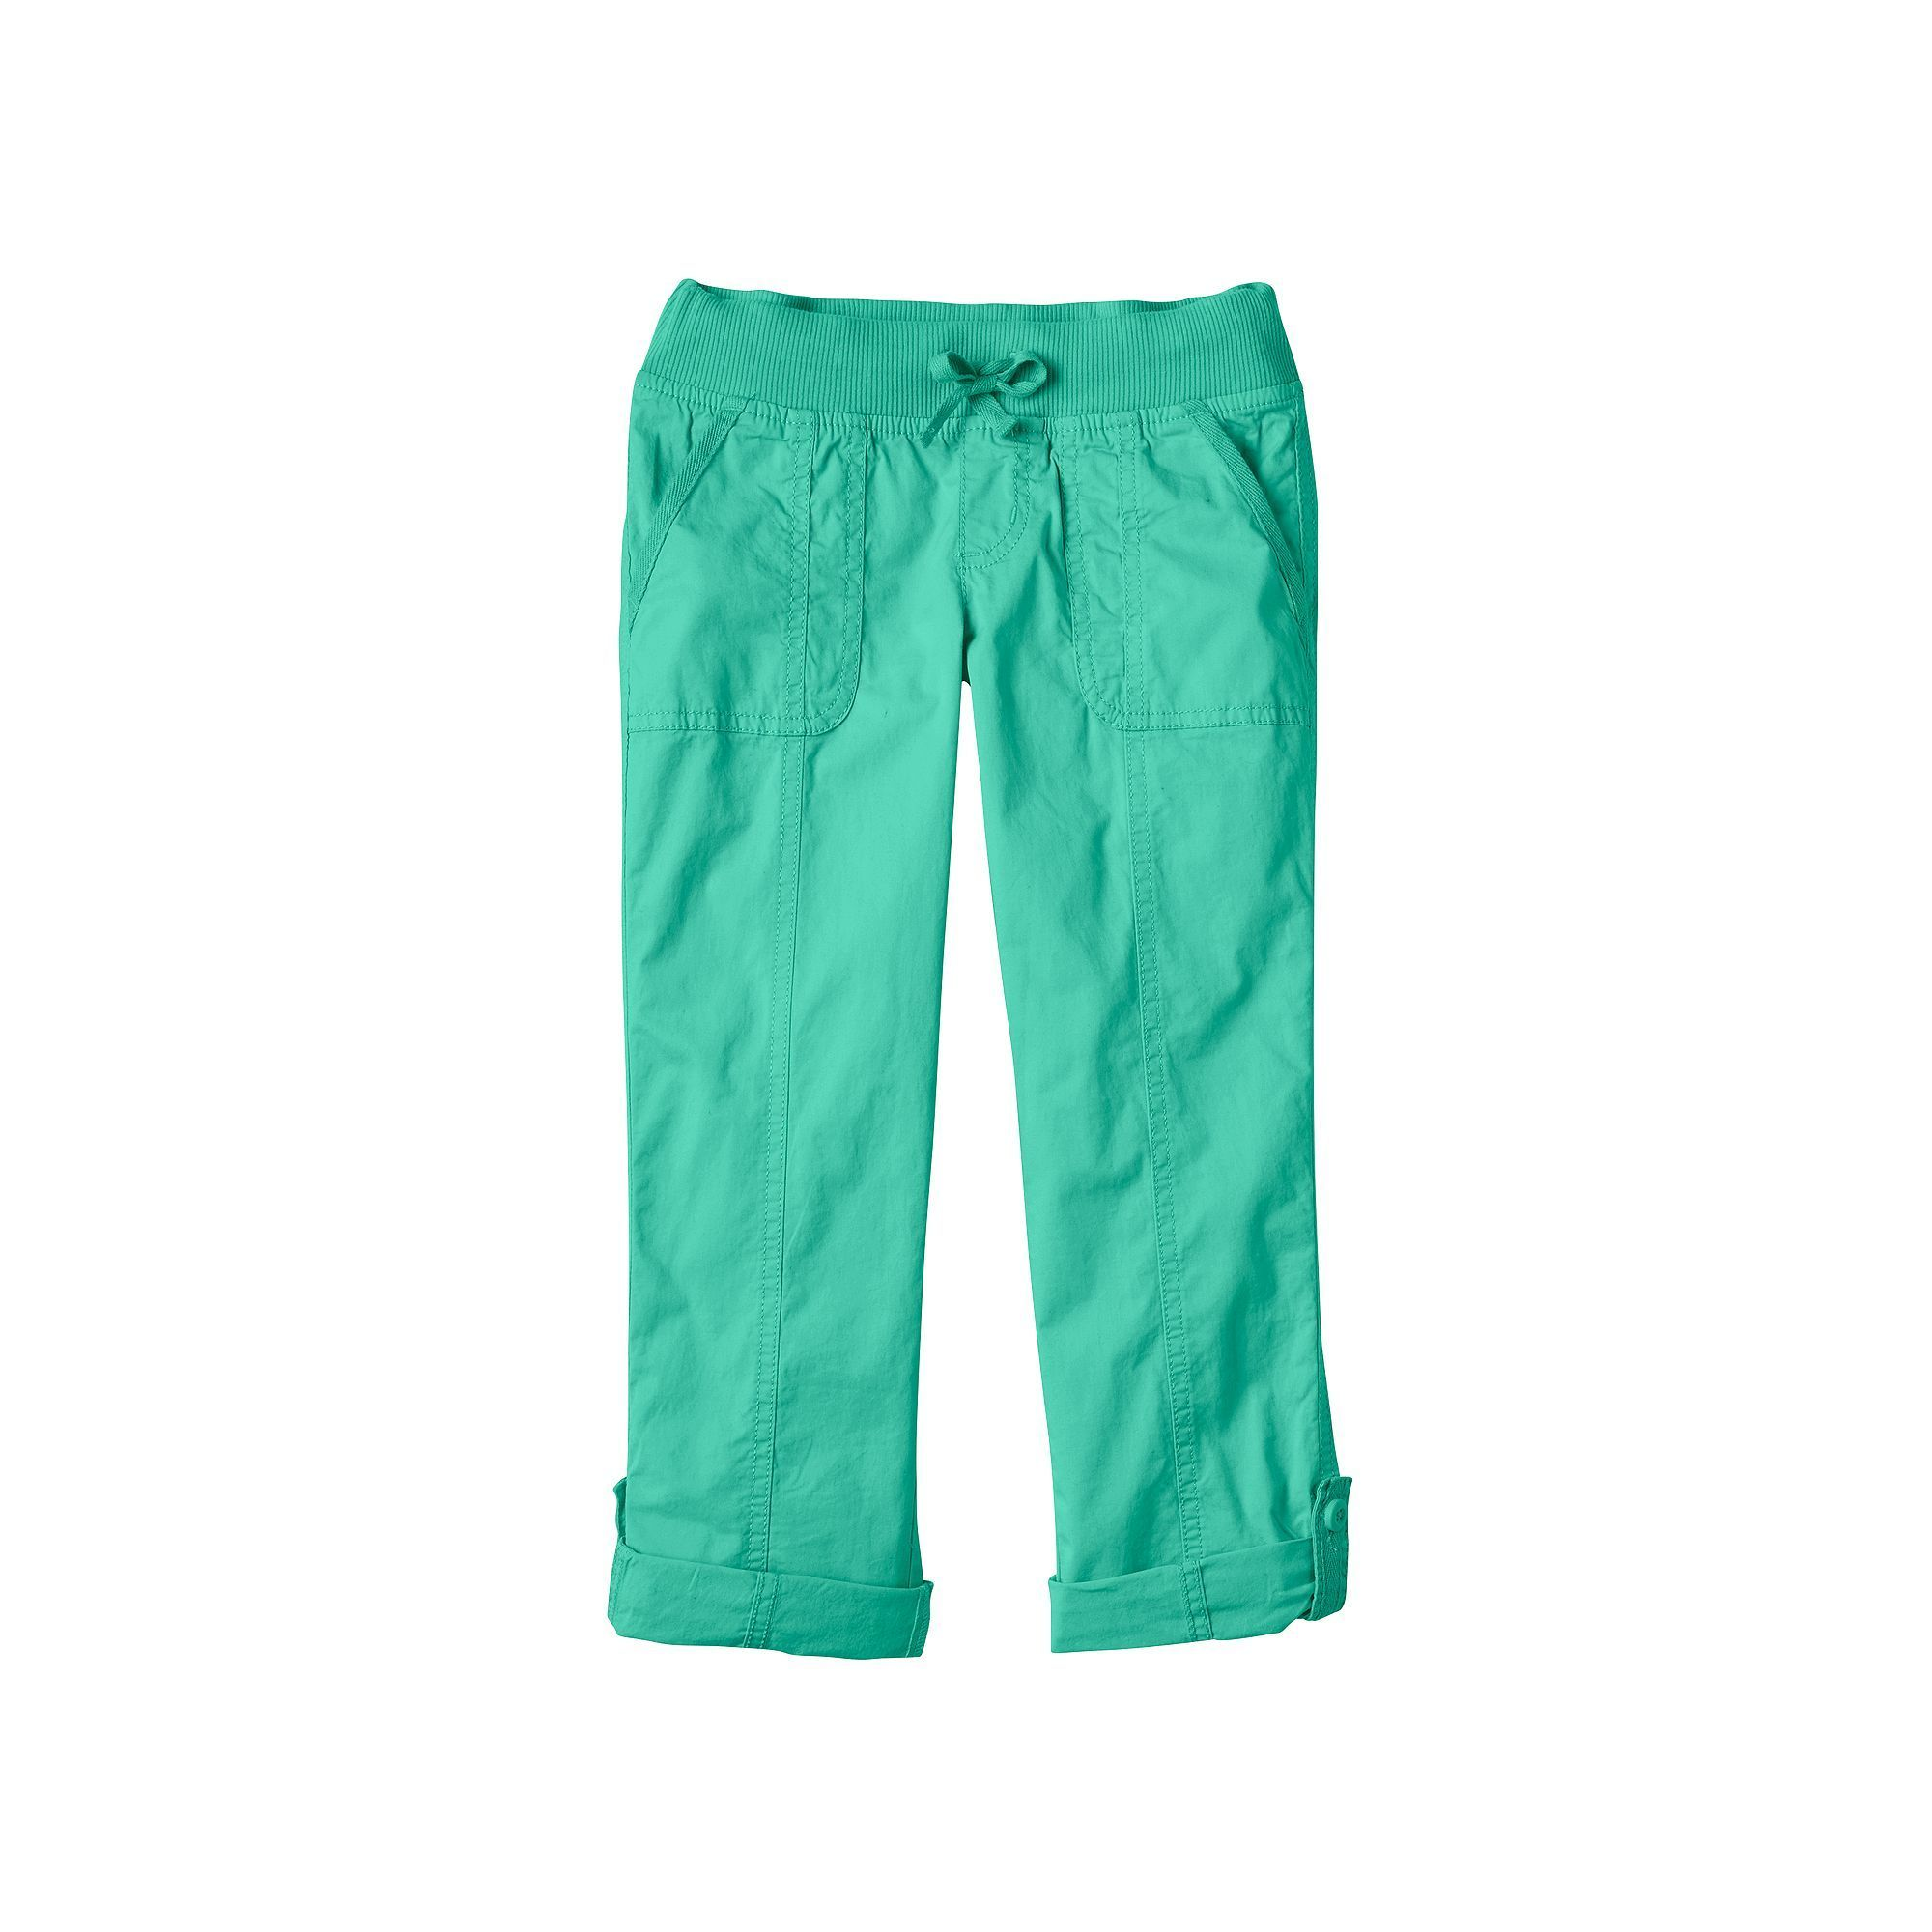 Girls 7-16 & Plus Size SO® Ribbed Waist Utility Pant Roll-Tab Capris, Girl's, Size: 20 1/2, Turquoise/Blue (Turq/Aqua)